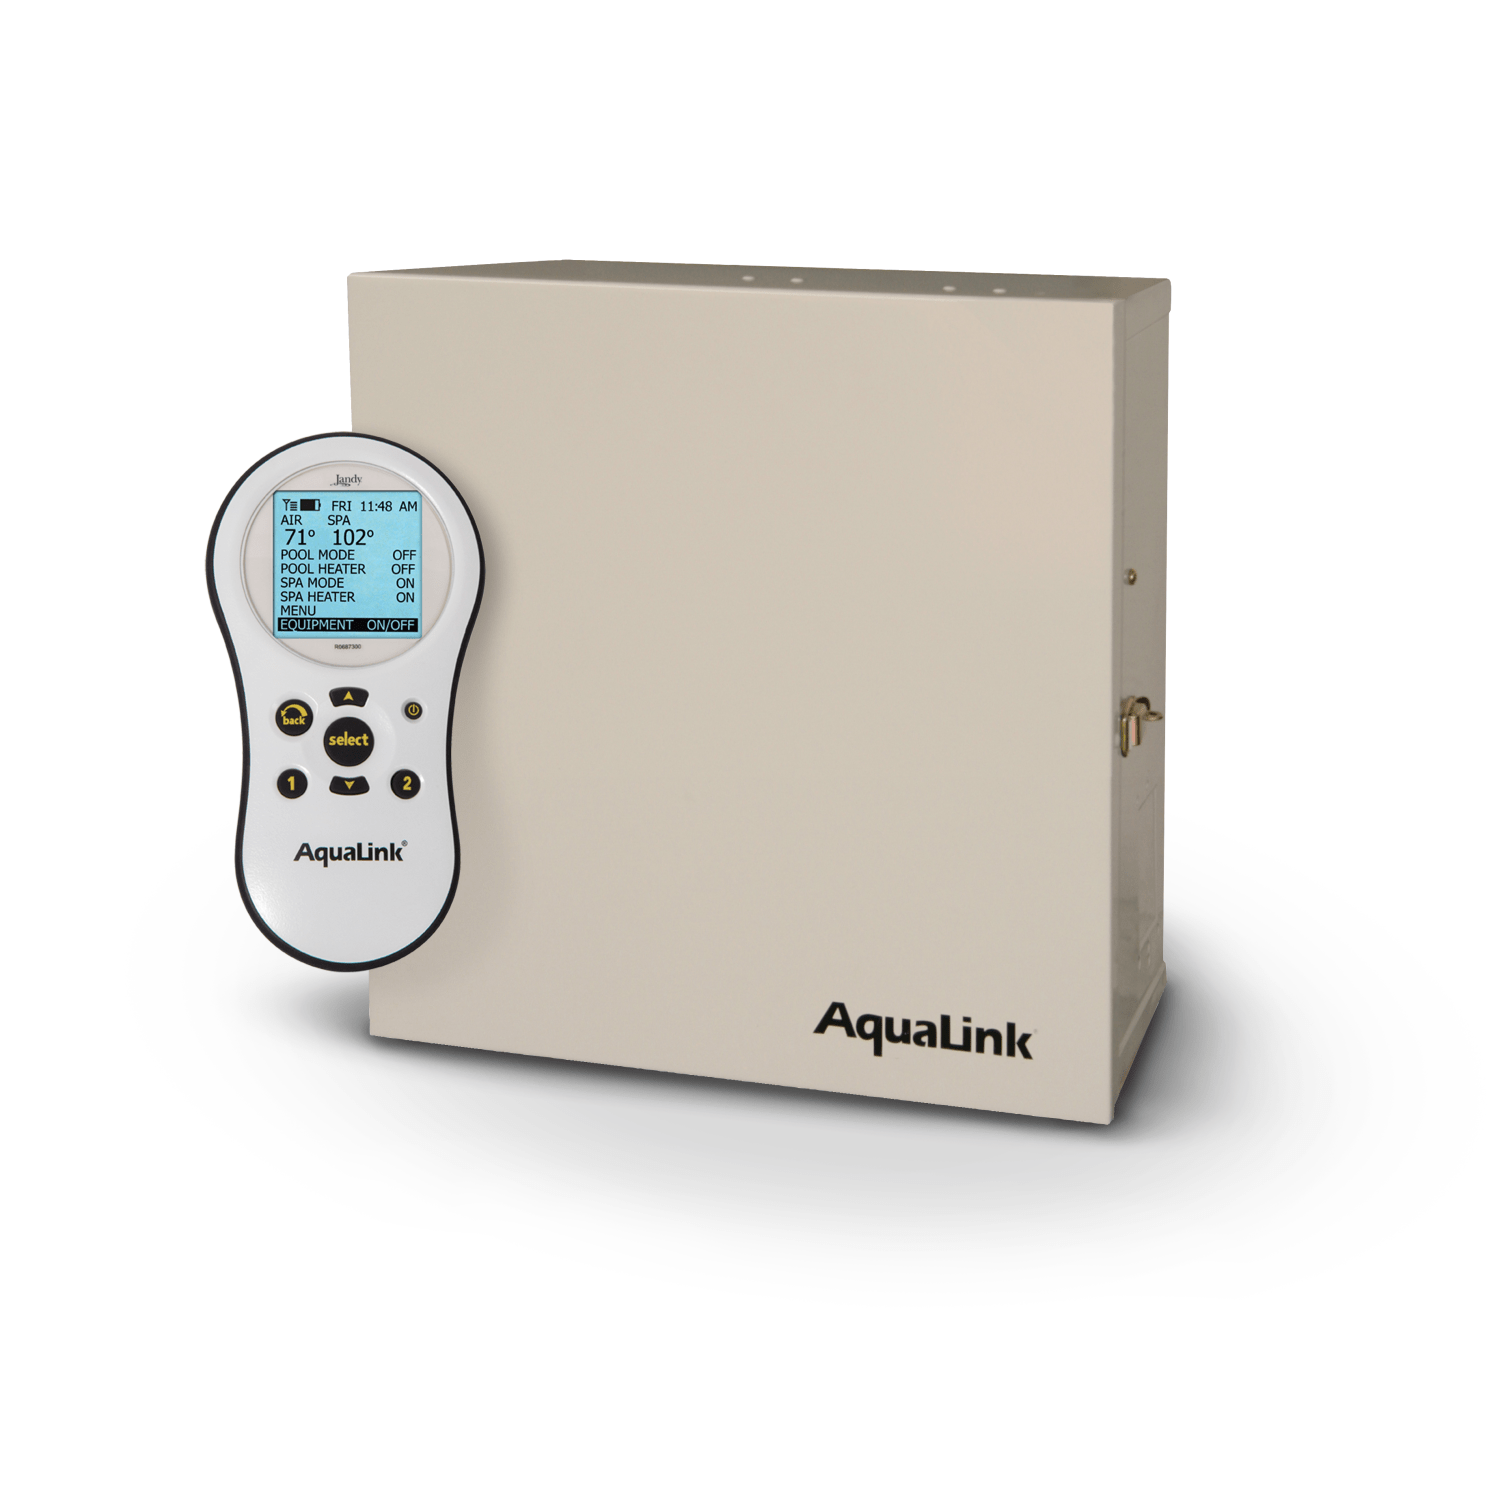 Aqualink Pda Jandy Pro Series Wiring A Sub Panel Breaker Box Pool Automation System